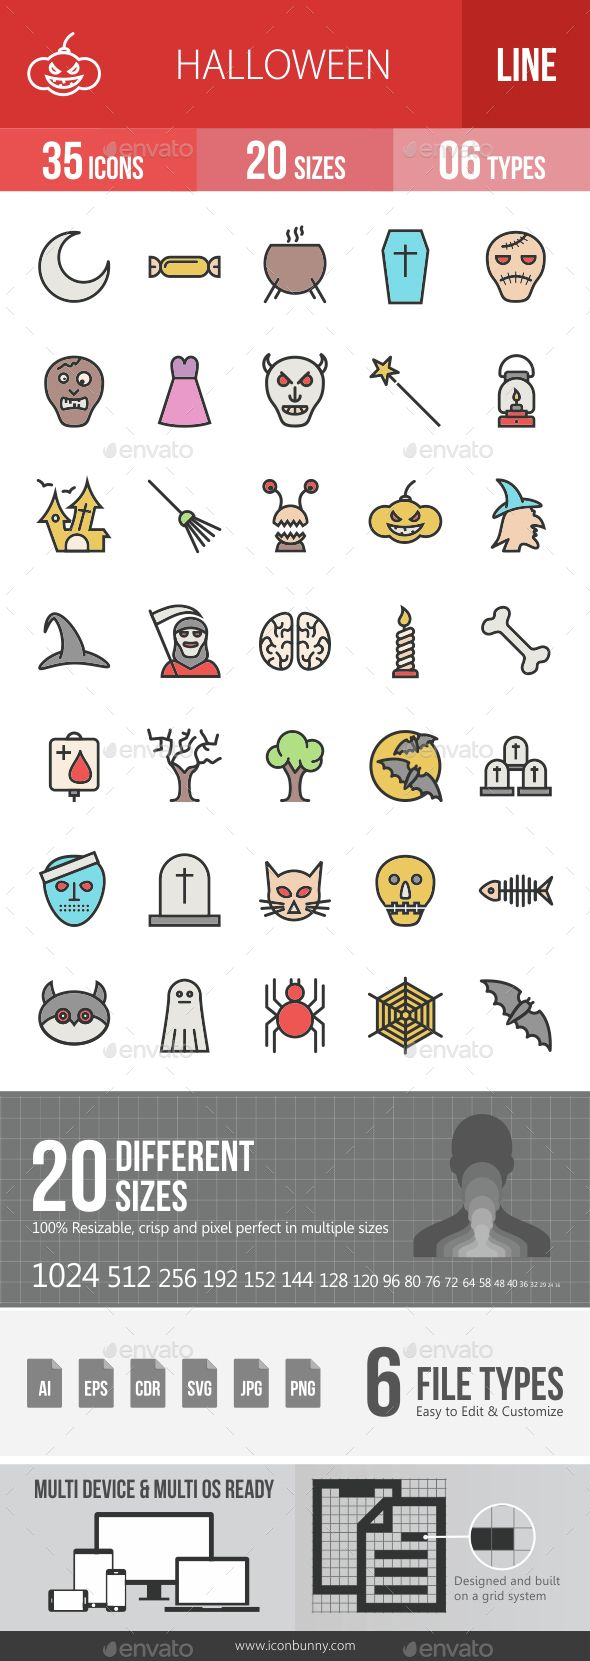 Halloween Filled Line Icons            http://graphicriver.net/item/halloween-filled-line-icons/14676163?ref=damiamio